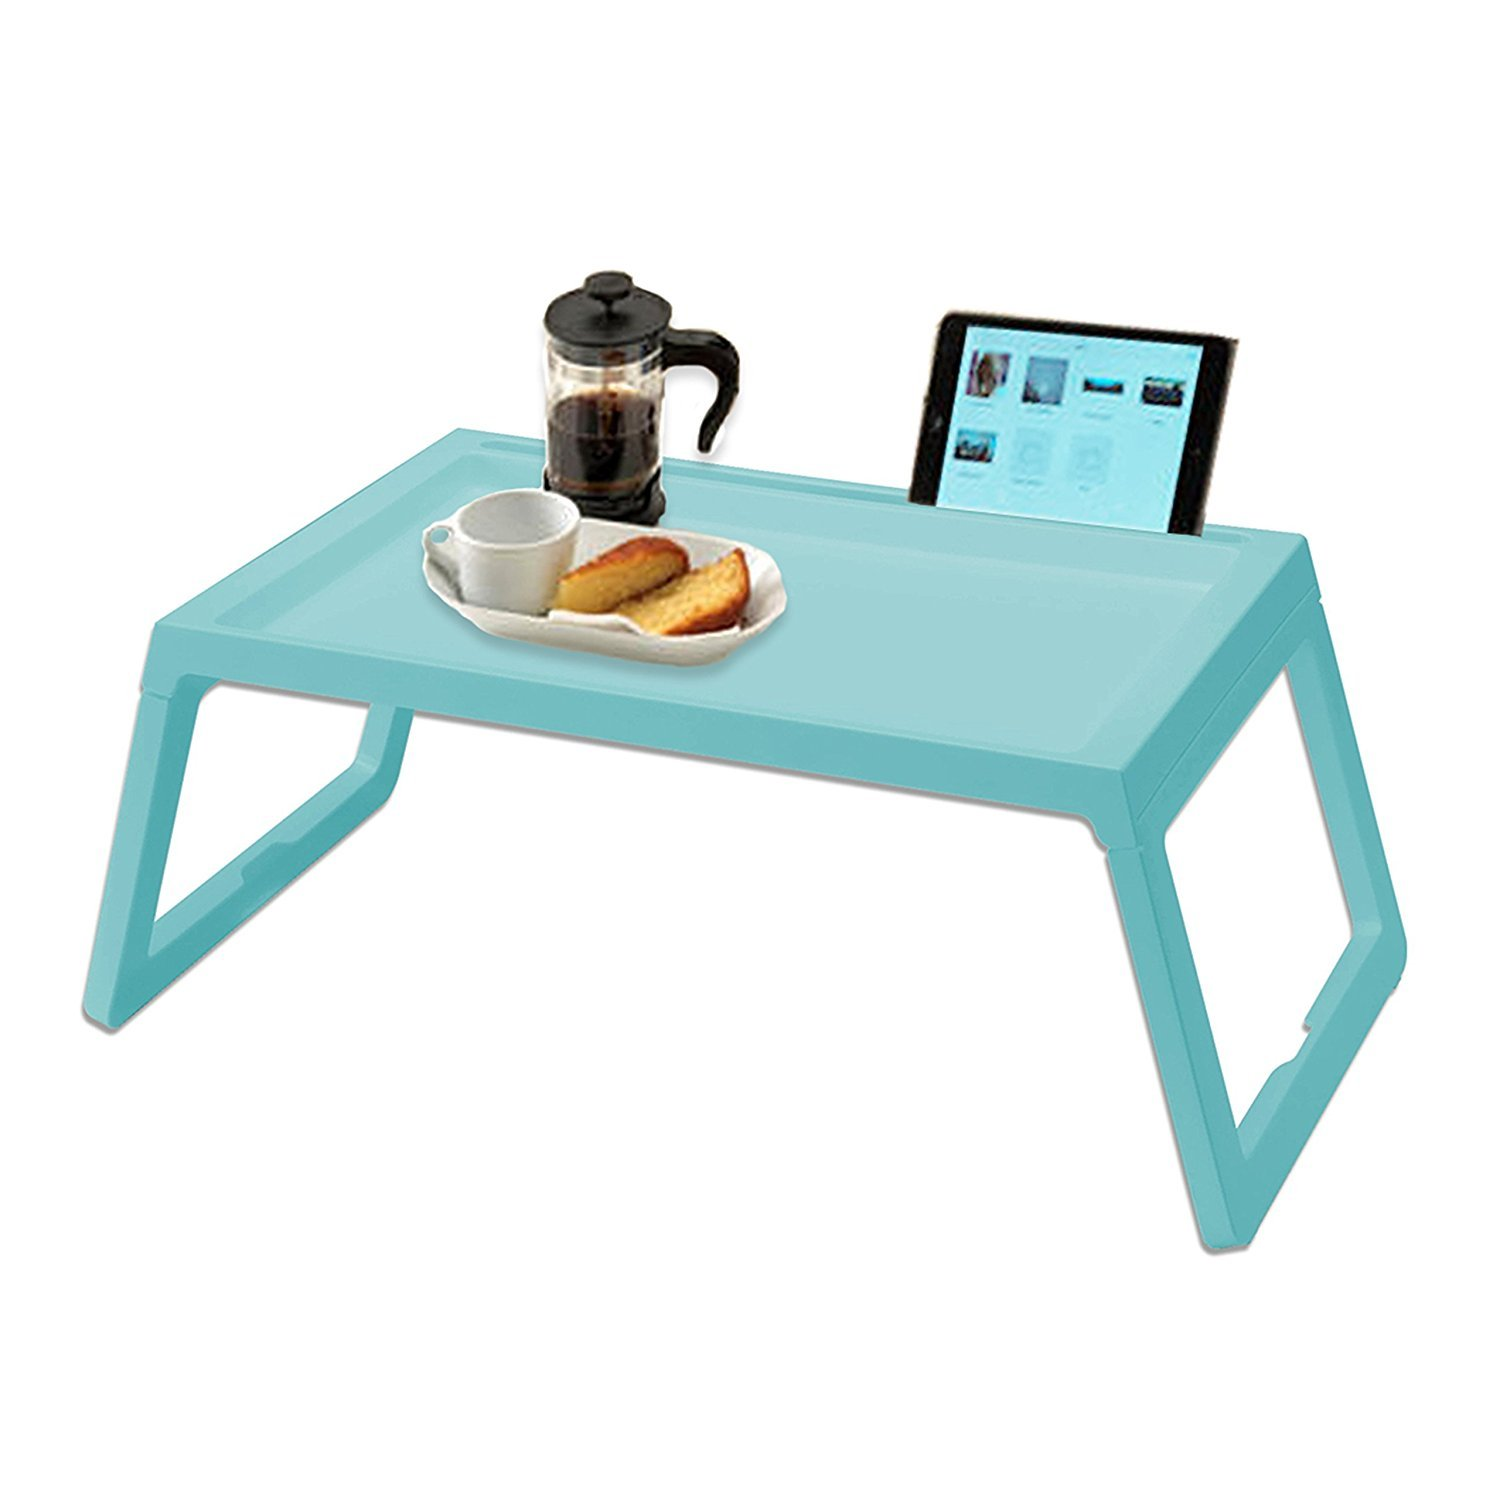 Bed Table, Foldable Breakfast Dinner Serving Bed Tray, Laptop stand Tablet Notebook Holder for Sofa Floor, Portable Mini Picnic Desk, 22 Inch Lightweight PP, Blue